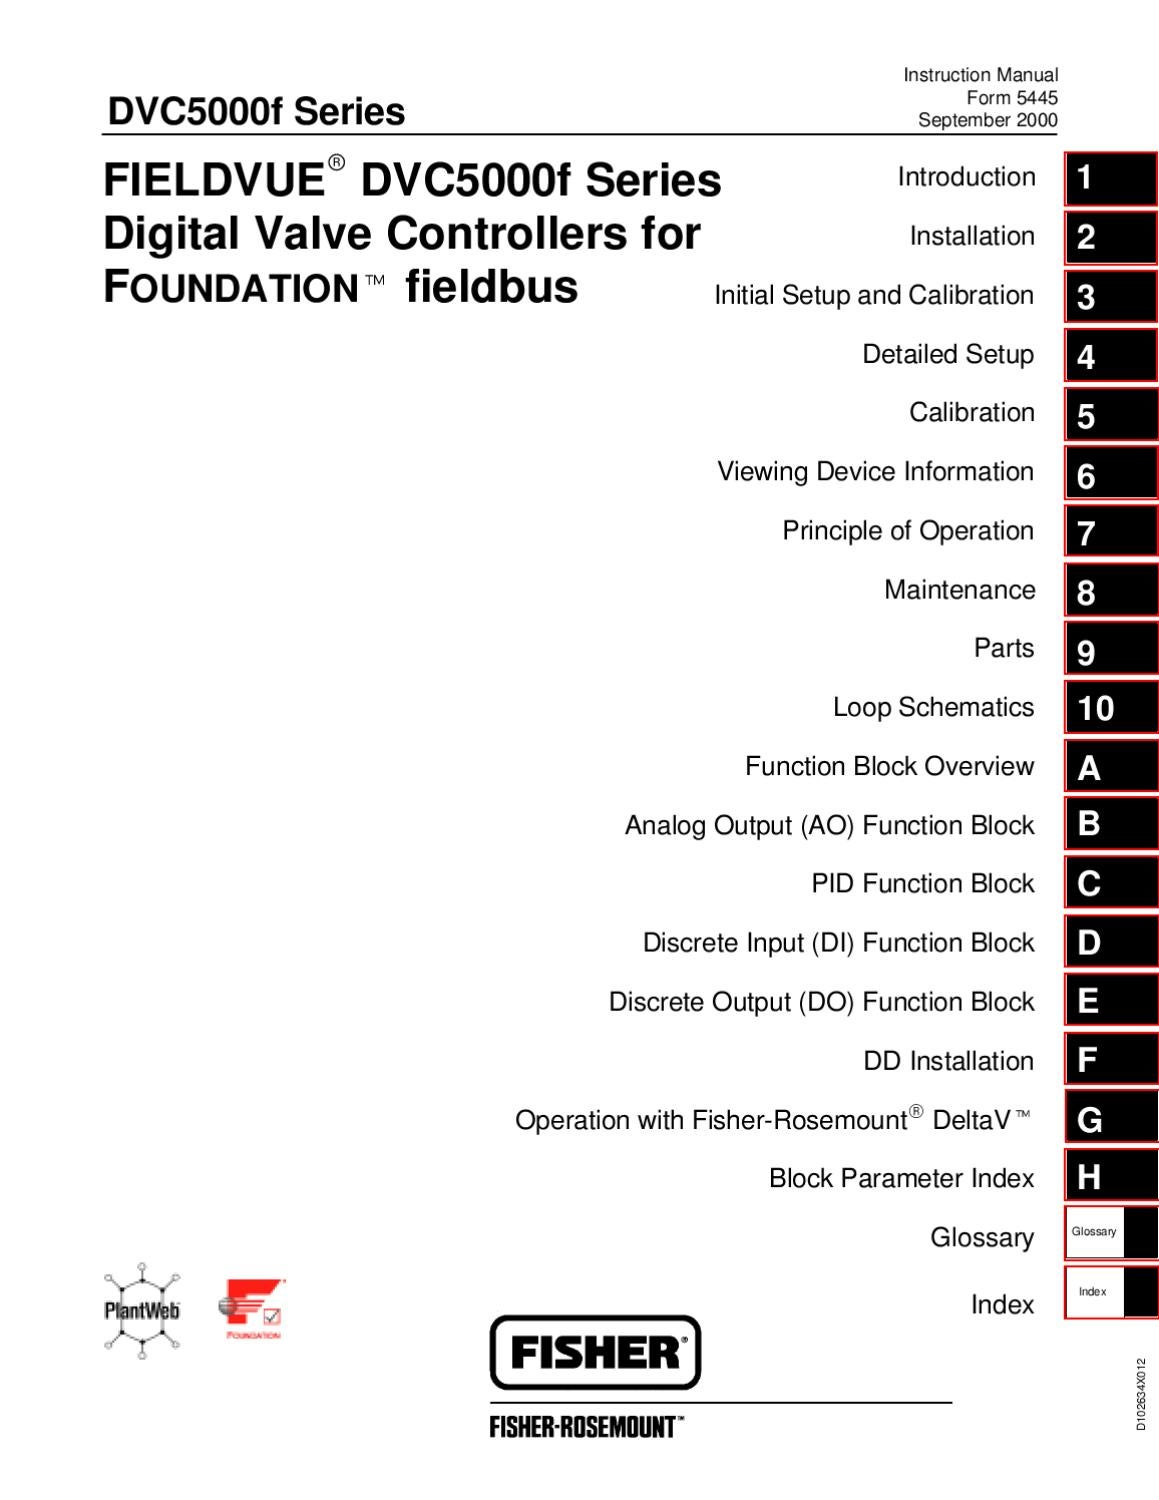 fisher mc 4040 wiring diagram dvc5000f controller instruction manual by rmc process controls & filtration, inc. - issuu mc 60 wiring diagram